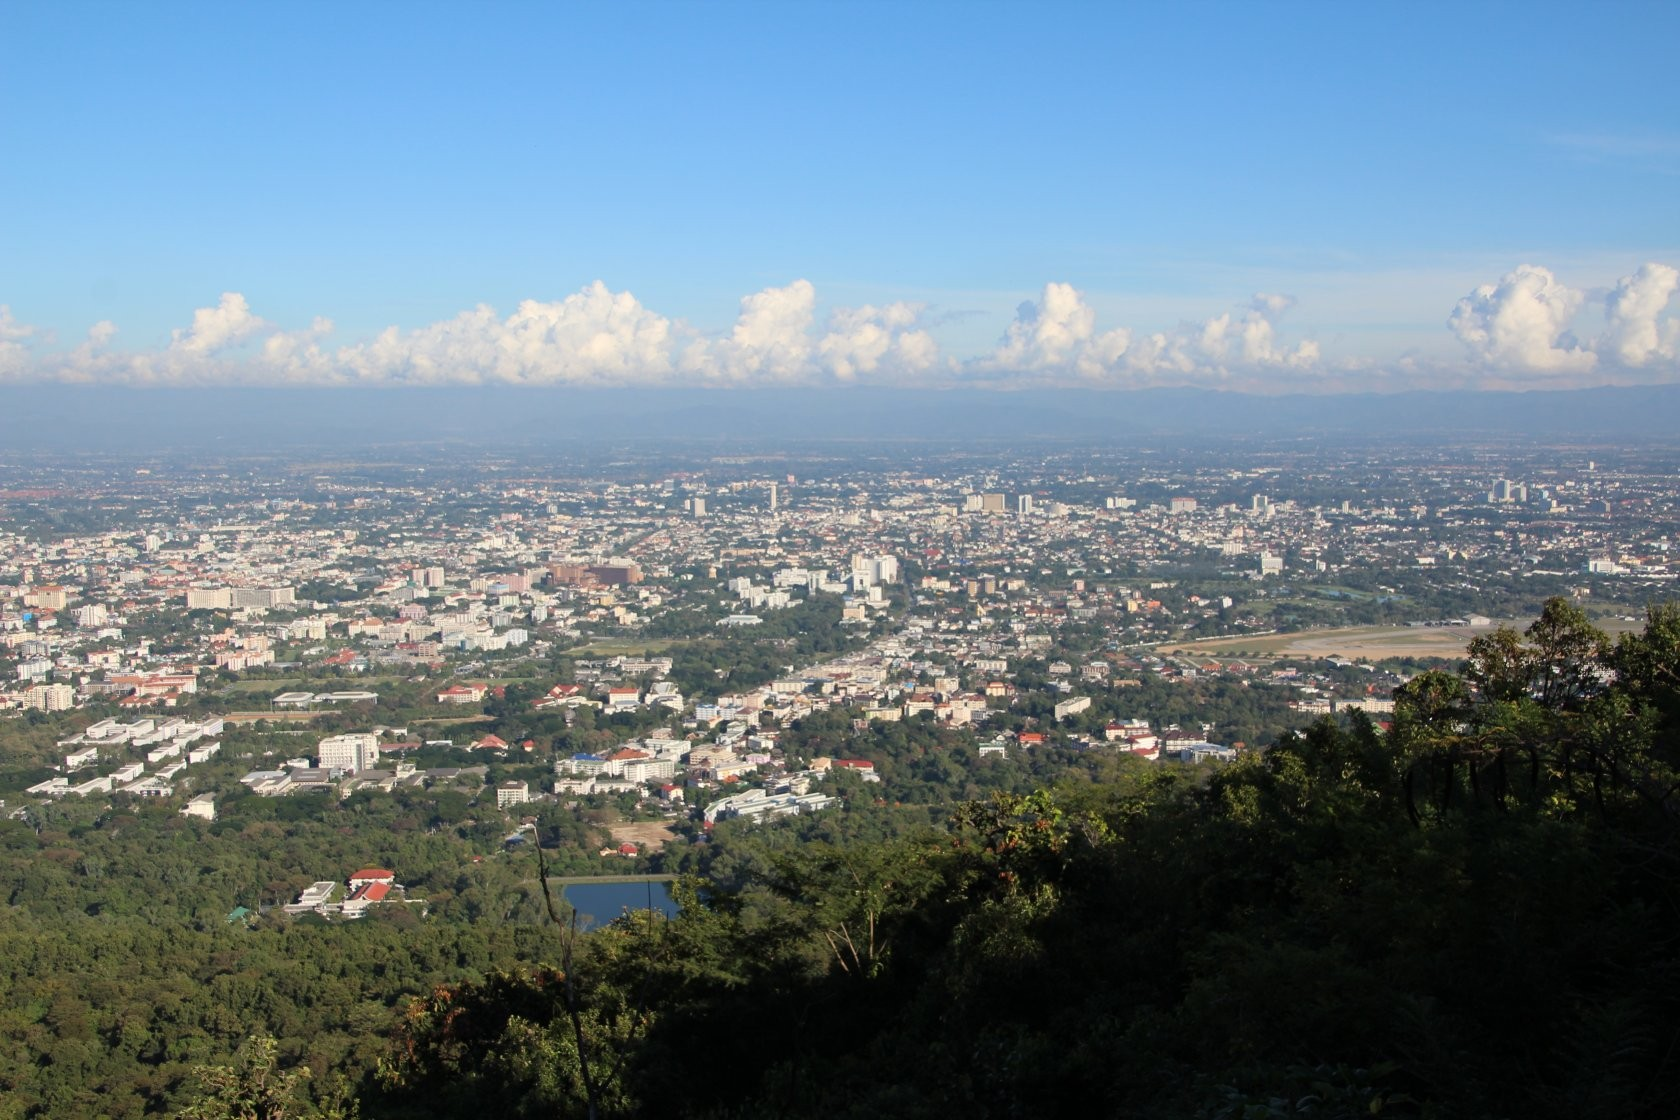 Chiang Mai - Rundgang durch die Stadt LXVI (Blick auf Chiang Mai)